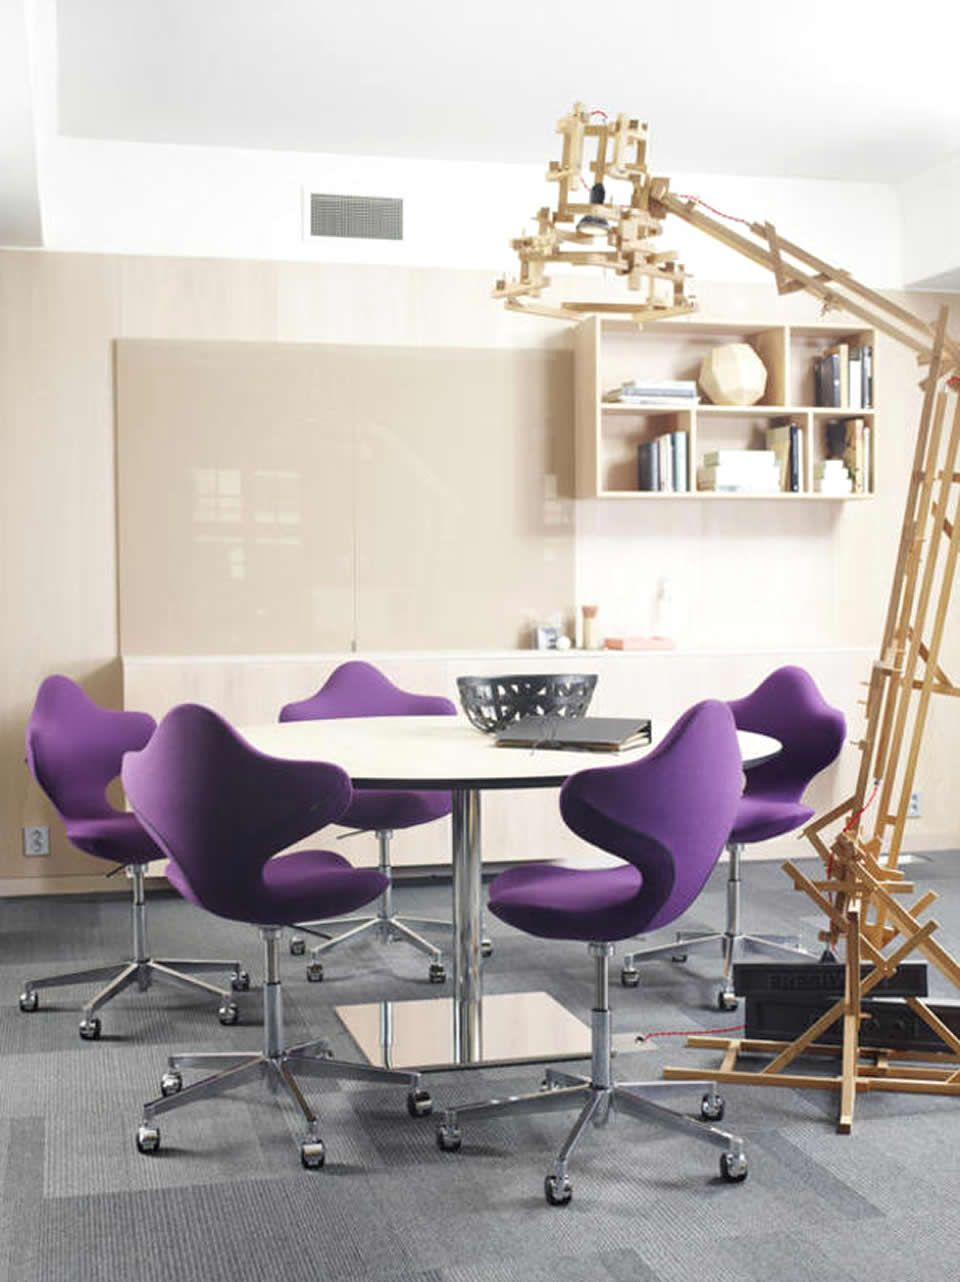 office conference room chairs ergonomic bean bag chair small meeting interior design with purple active by varier